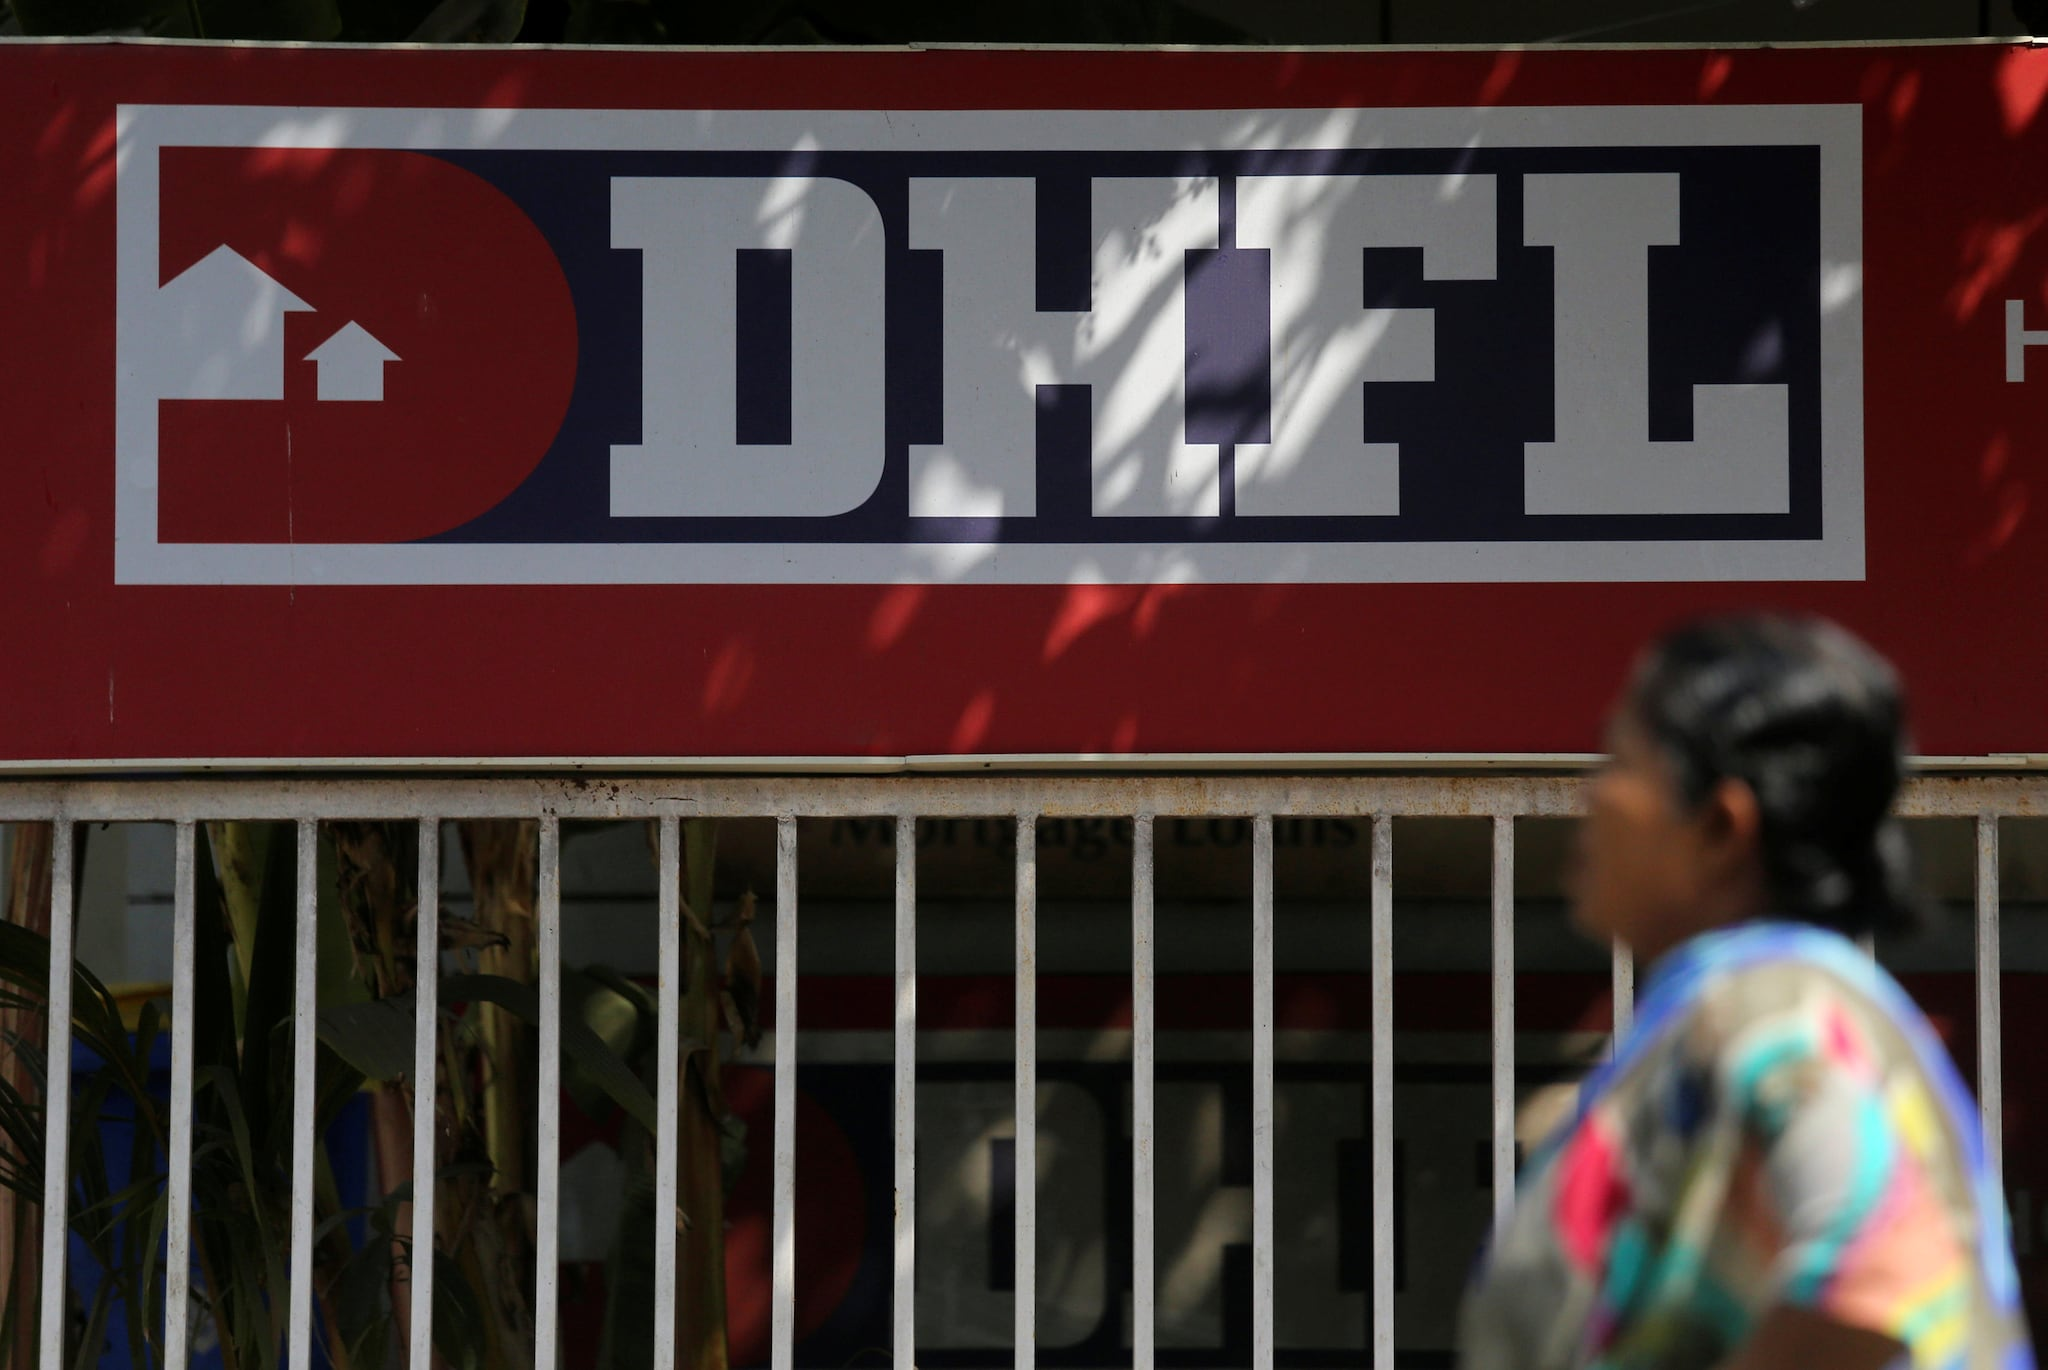 DHFL: The company confirmed that ED officers visited one of the offices and raised certain queries to the senior officials.